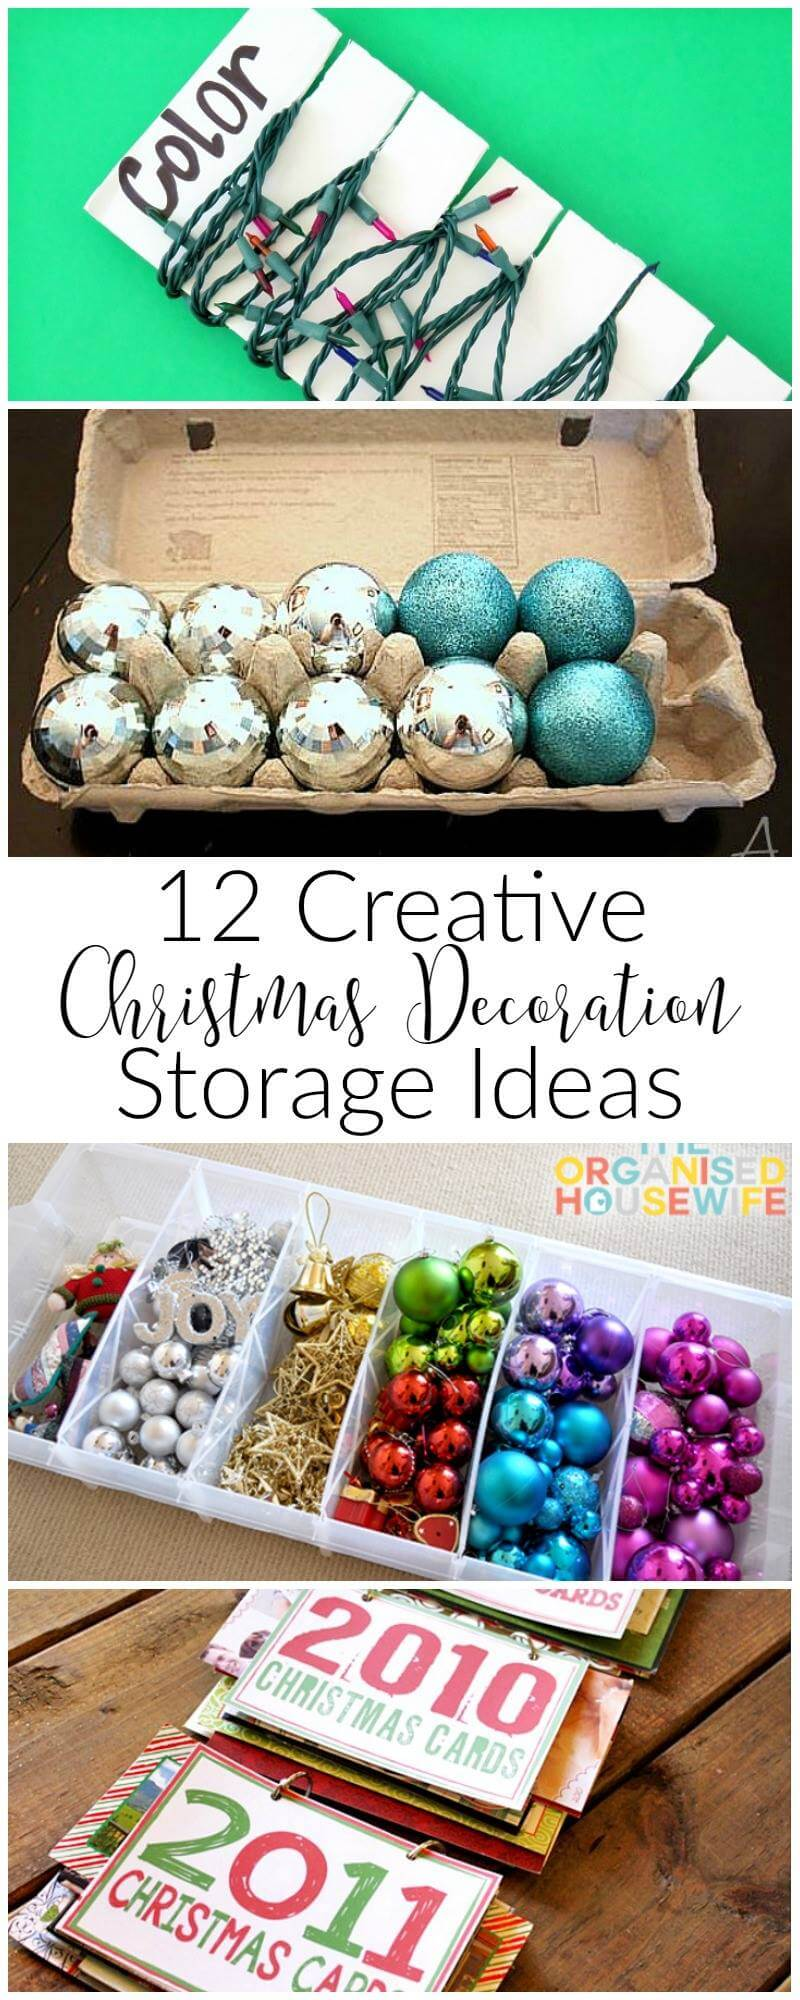 12 creative Christmas decoration storage ideas that will help you conquer the after Christmas mess!